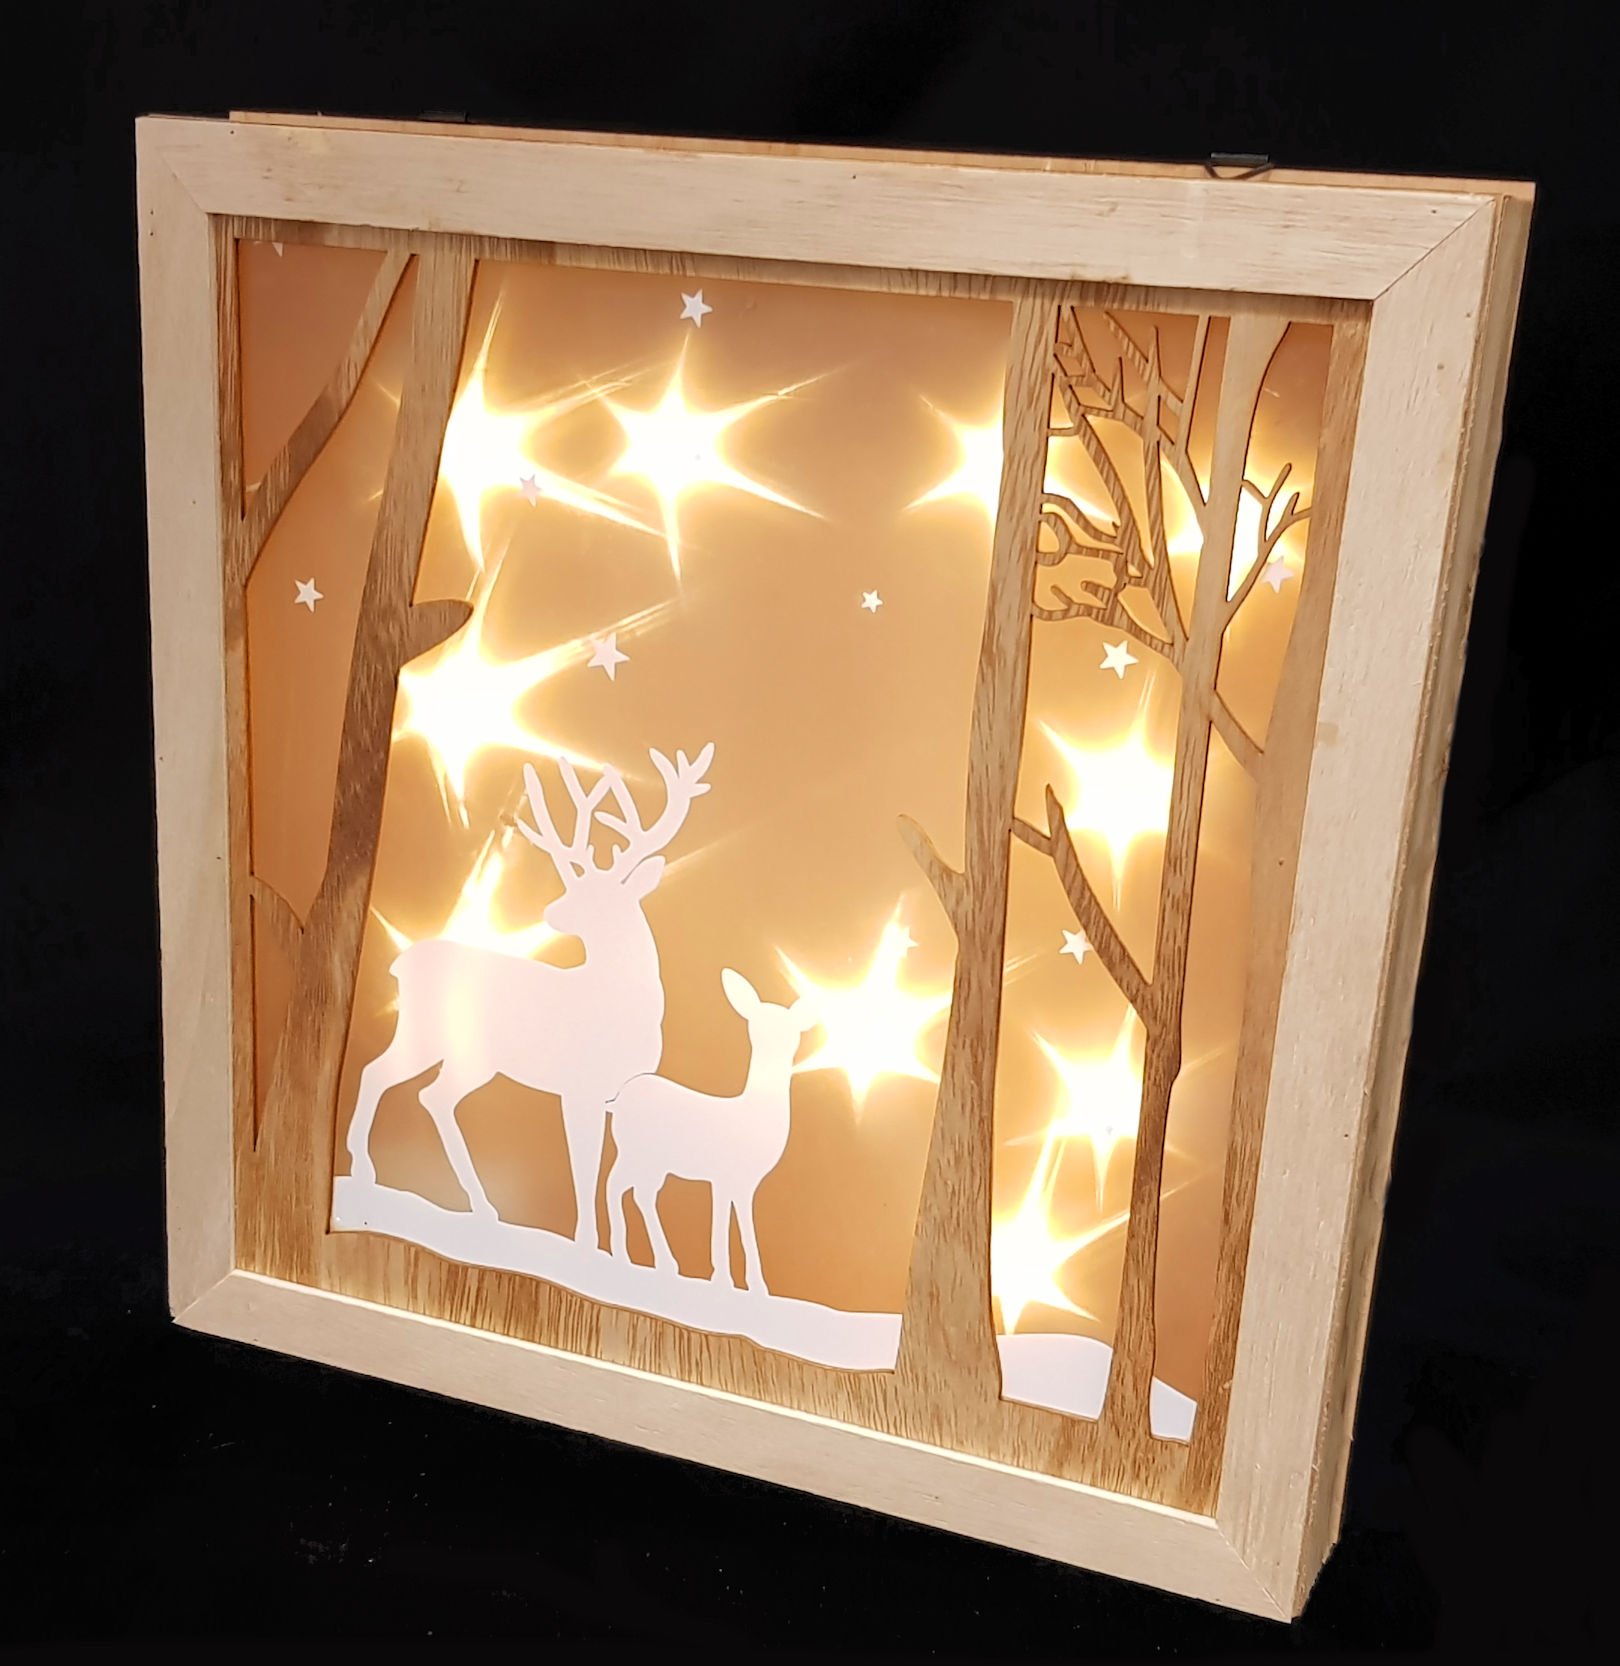 led weihnachtsdeko rentier 30 cm holz fensterdeko beleuchtet hologramm effekt ebay. Black Bedroom Furniture Sets. Home Design Ideas